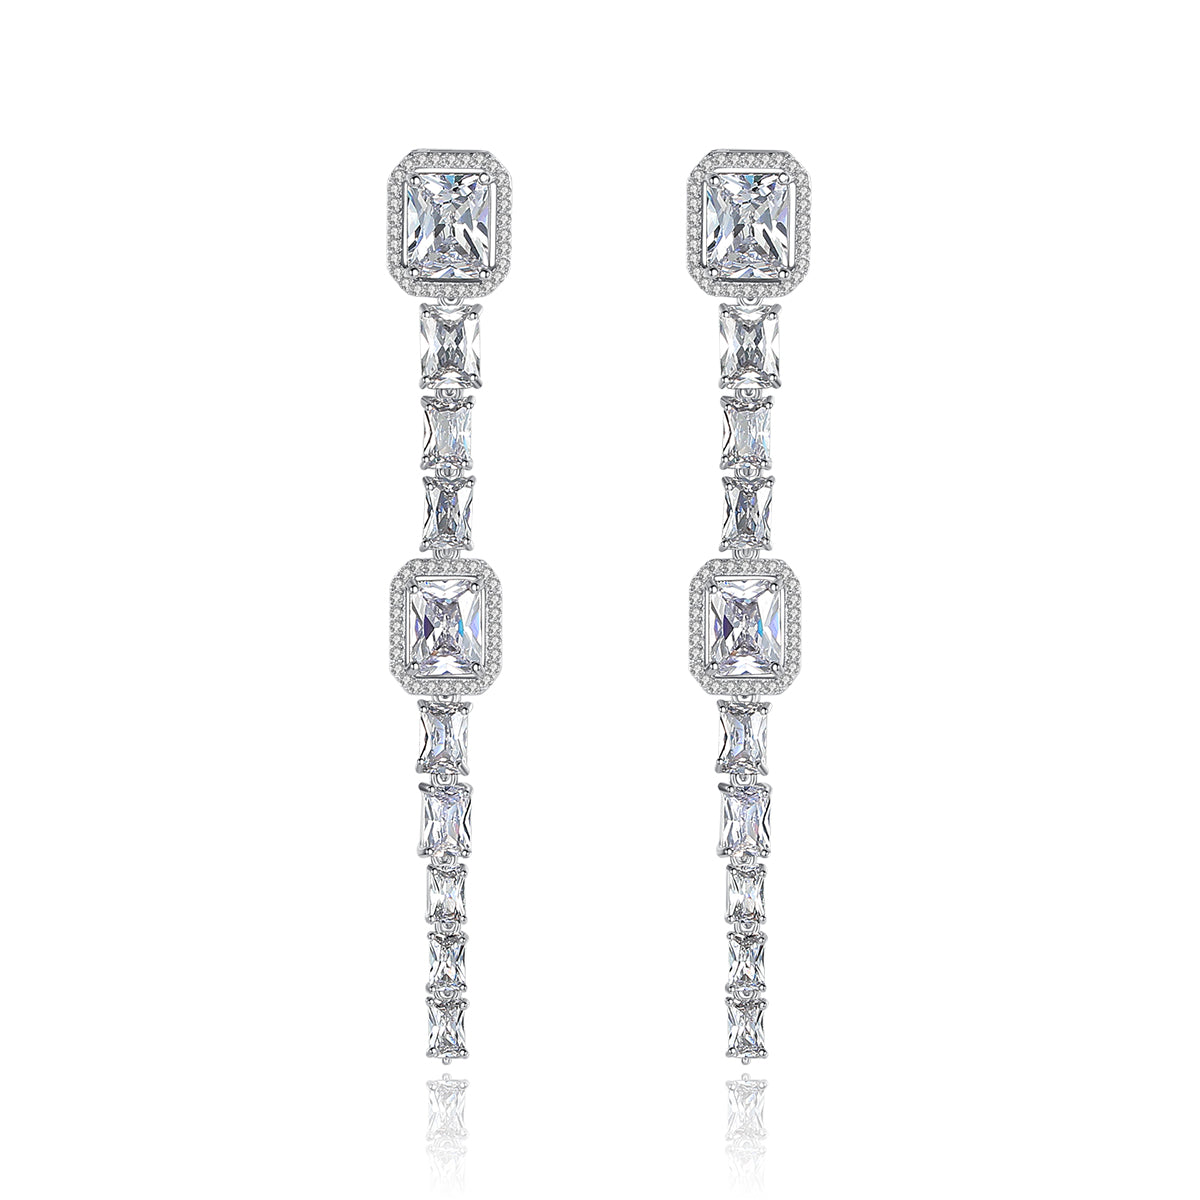 Baguette Cut Cubic Zirconia Drop Earrings